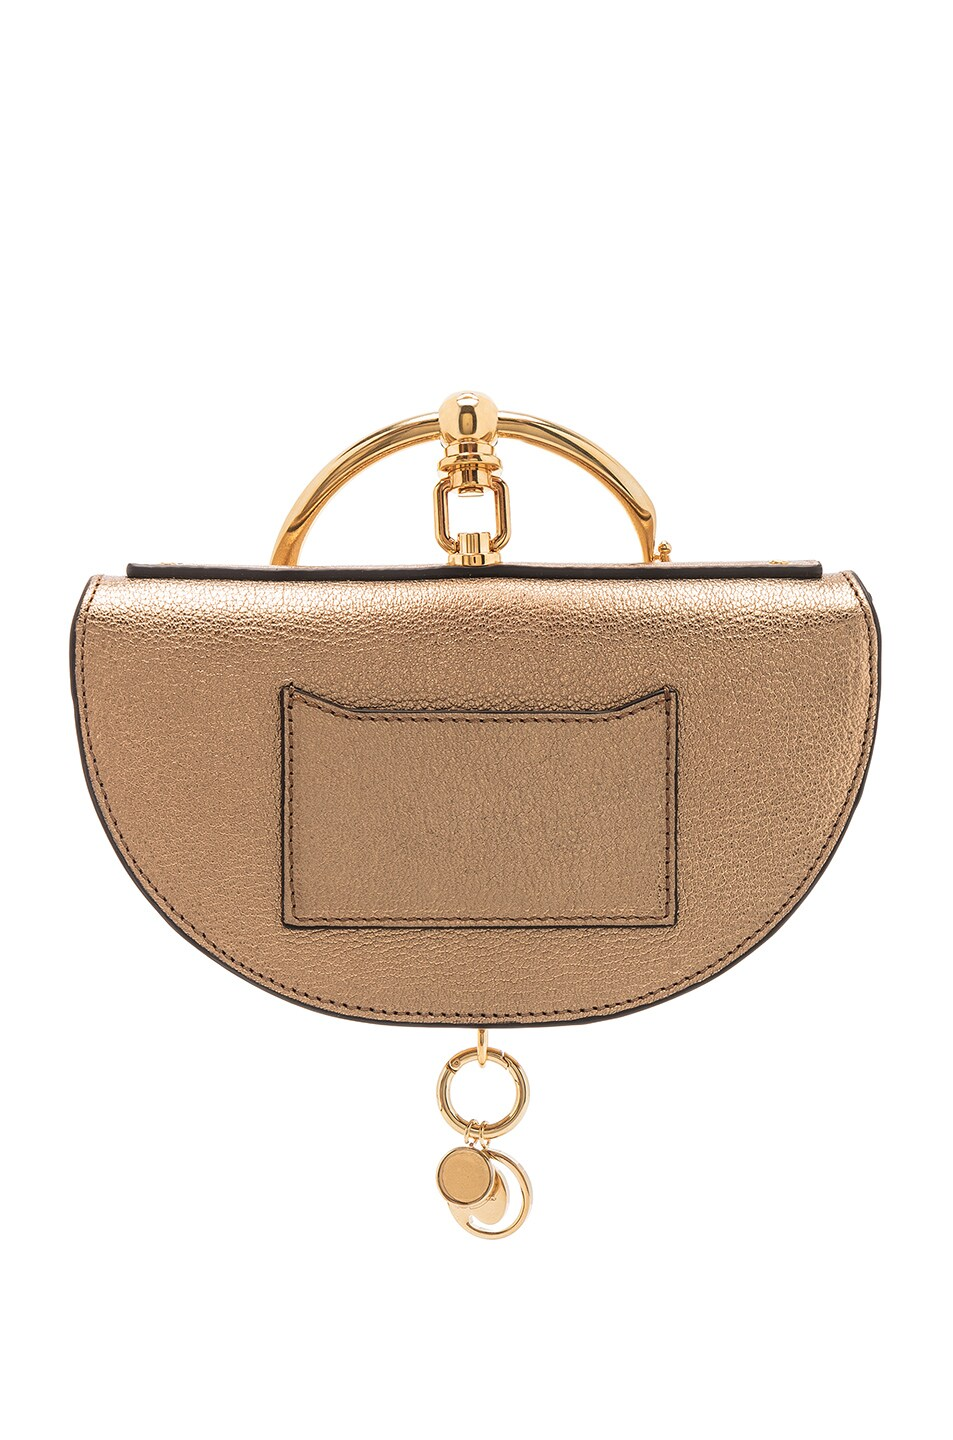 Image 3 of Chloe Small Nile Leather Metallic Minaudiere in Gold